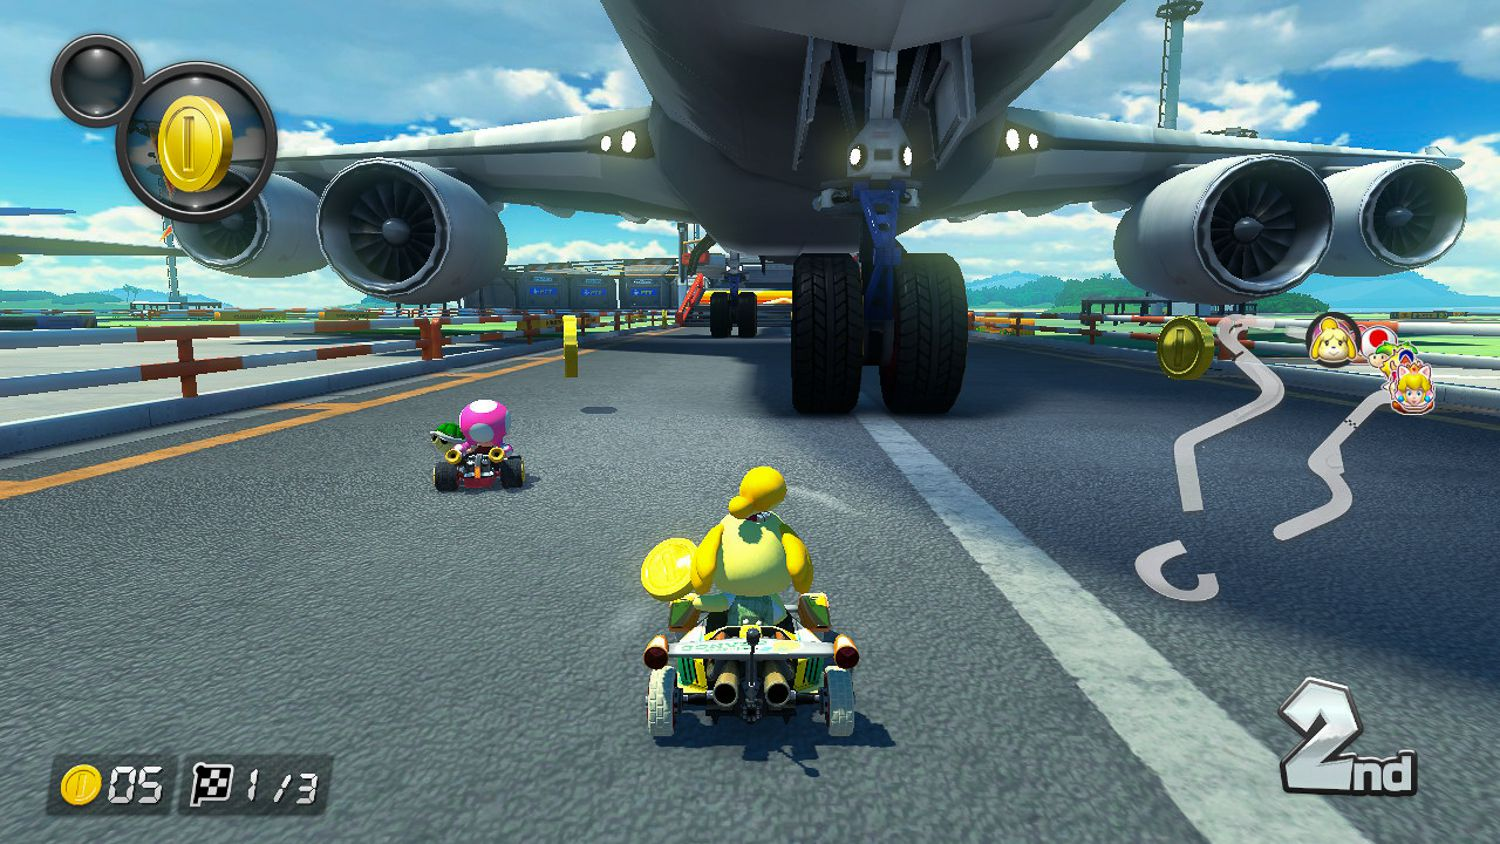 Mario Kart 8 Deluxe Review: A Recreated and Updated Classic